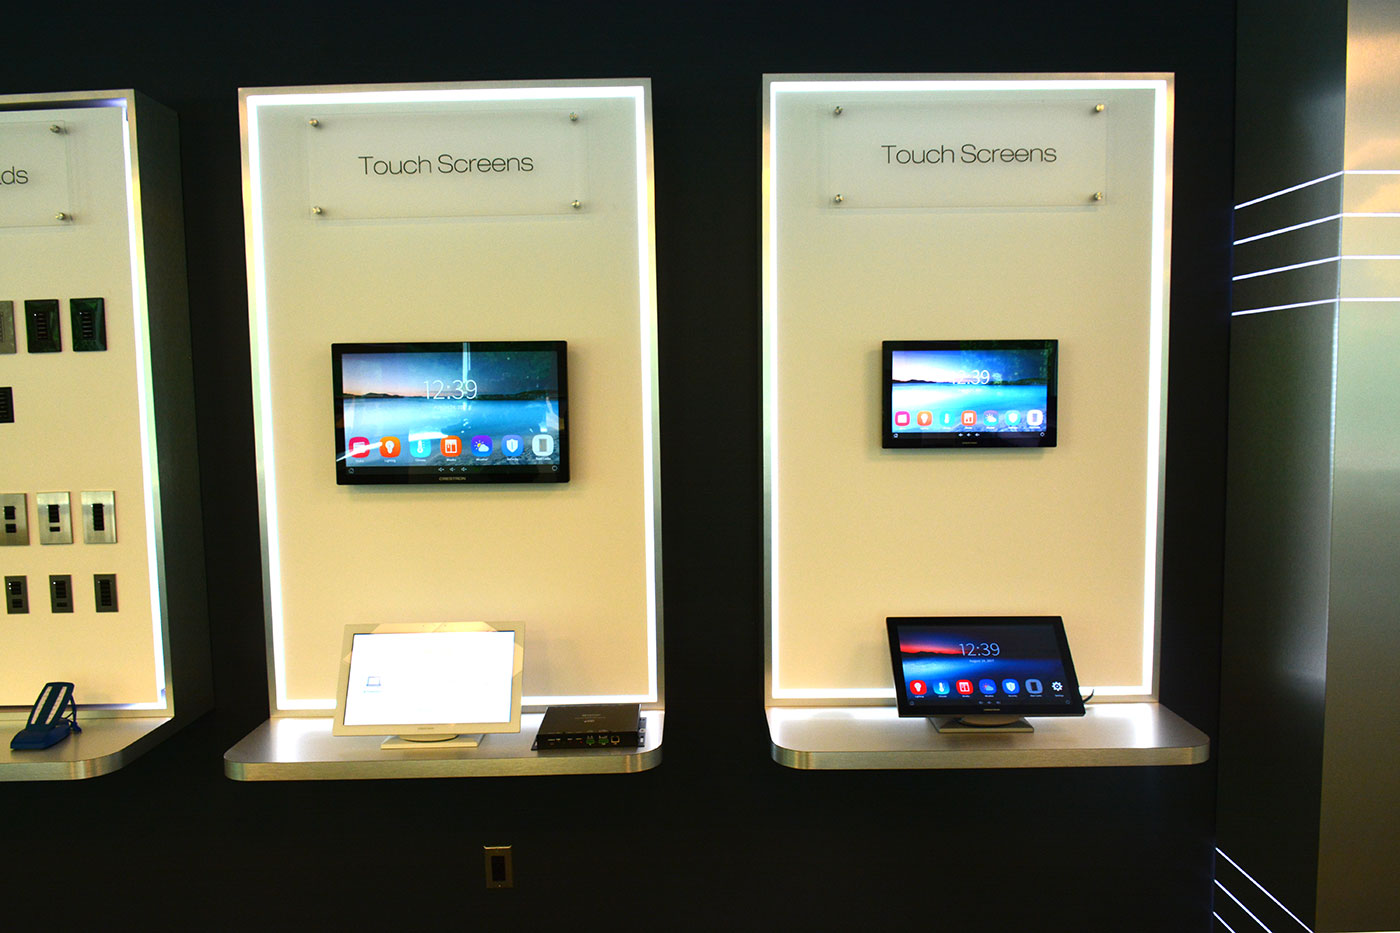 Crestron Large Touch Screens